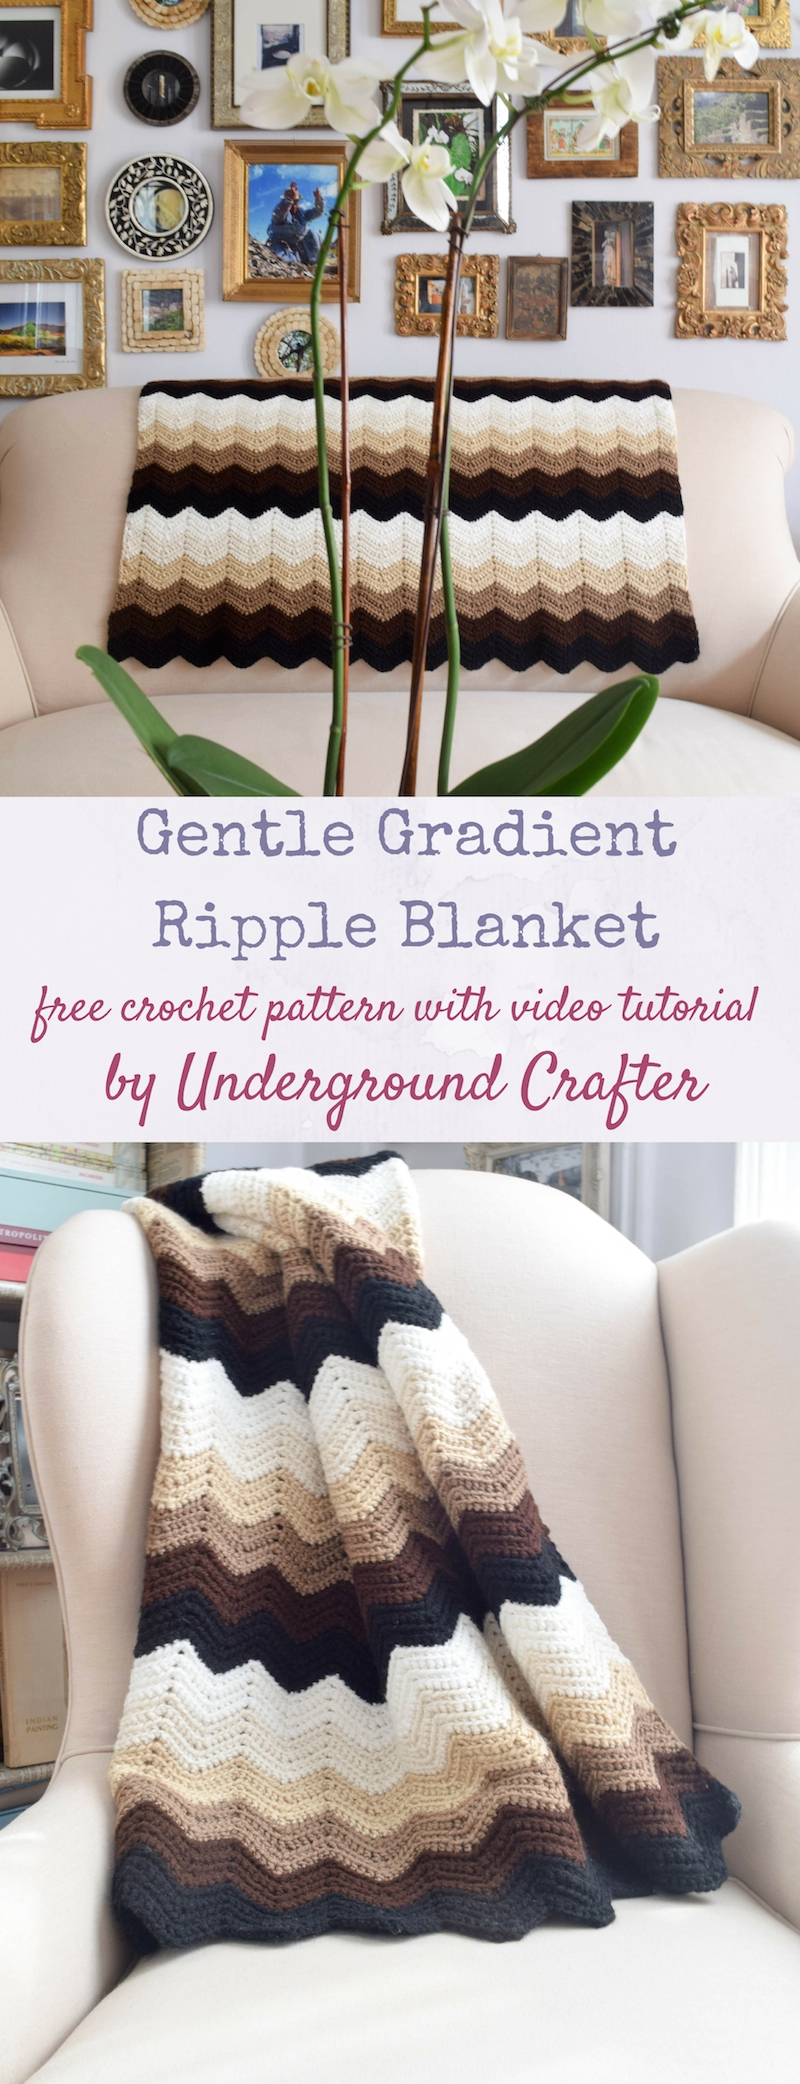 Gentle Gradient Ripple Blanket, free crochet pattern in Red Heart Super Saver yarn by Underground Crafter | This easy ripple pattern uses just one stitch and includes a video tutorial. This simple, beginner-friendly ripple pattern creates gentle waves. Use six colors or make it scrappy.